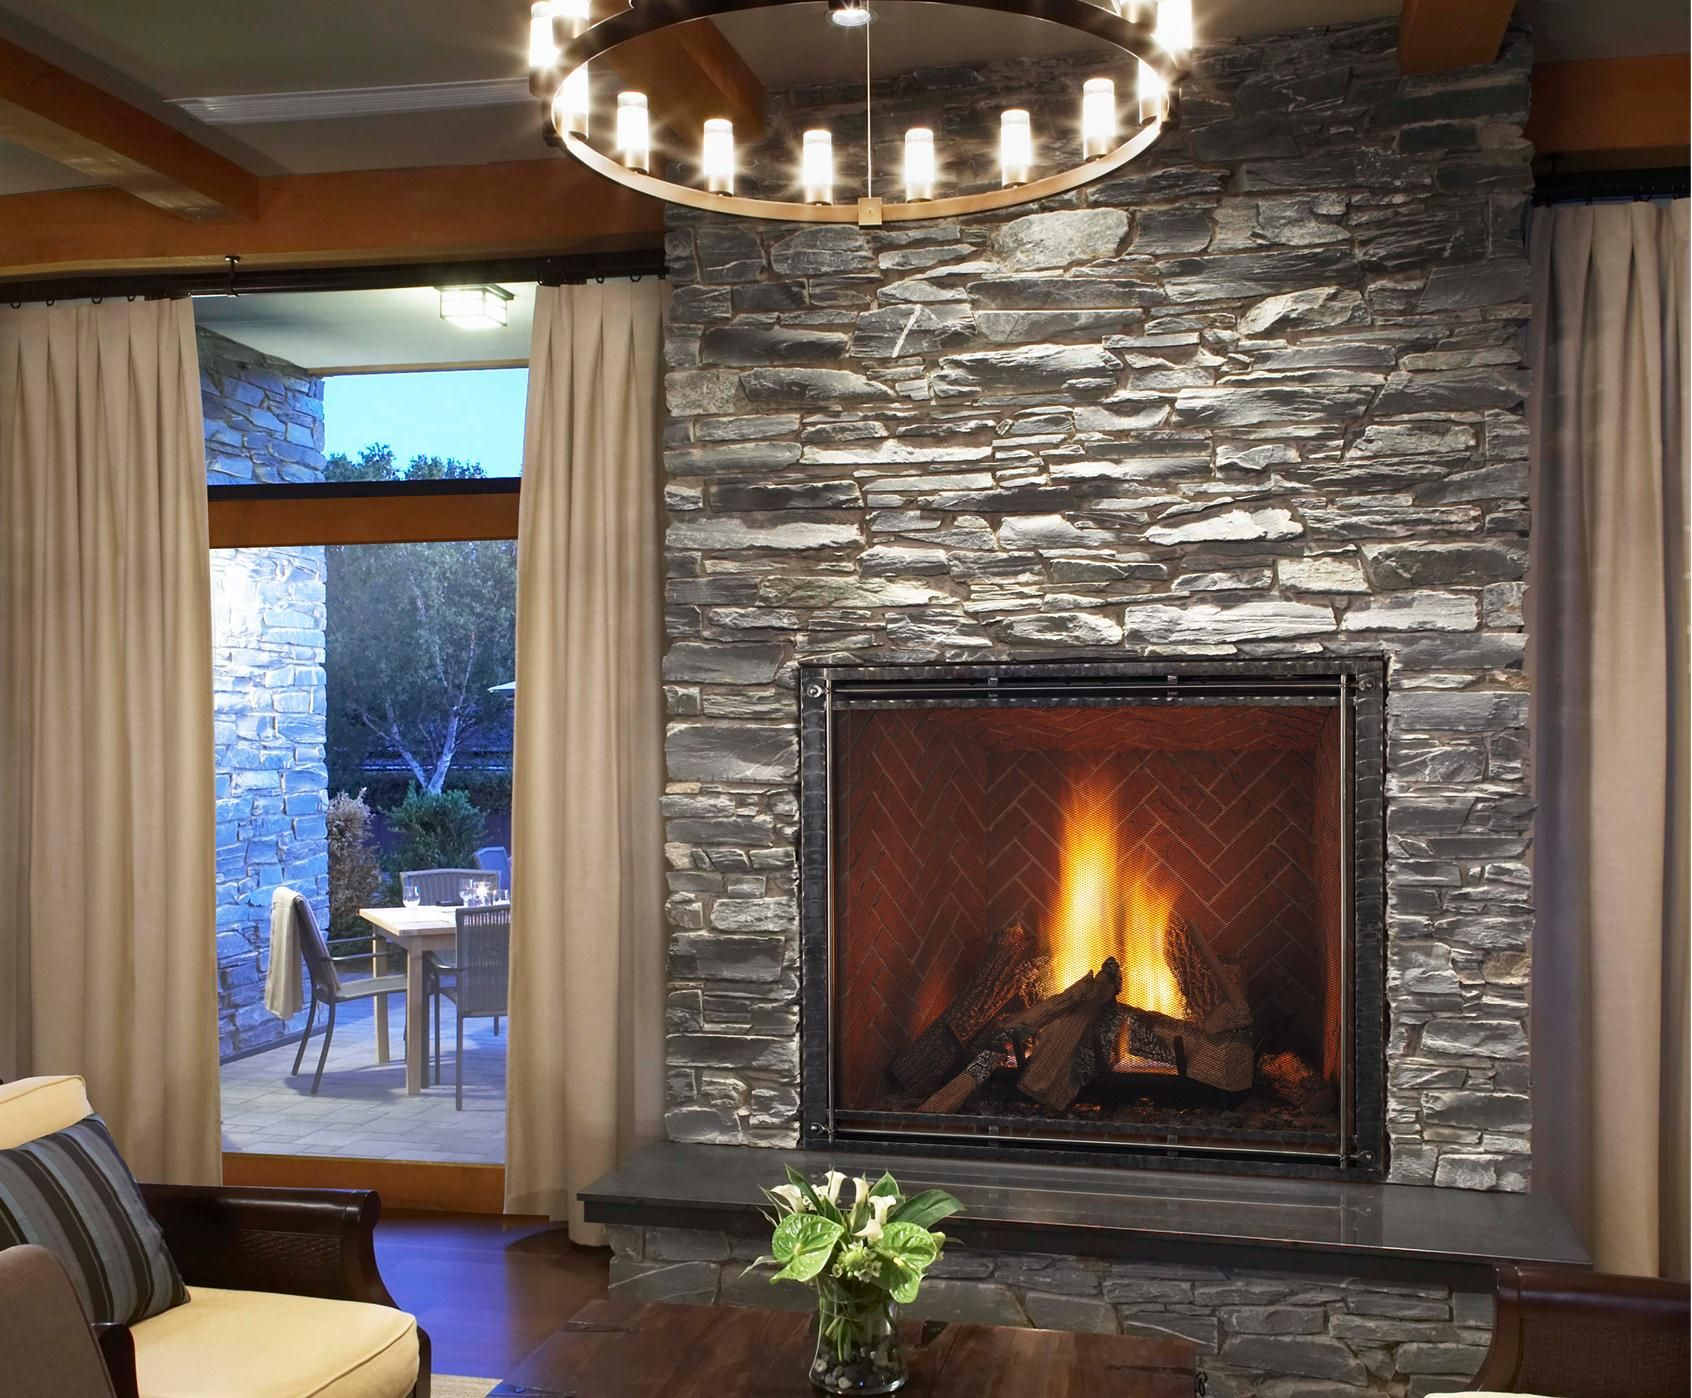 20 Best Fireplace Mantel Ideas For Your Home Fireplace design